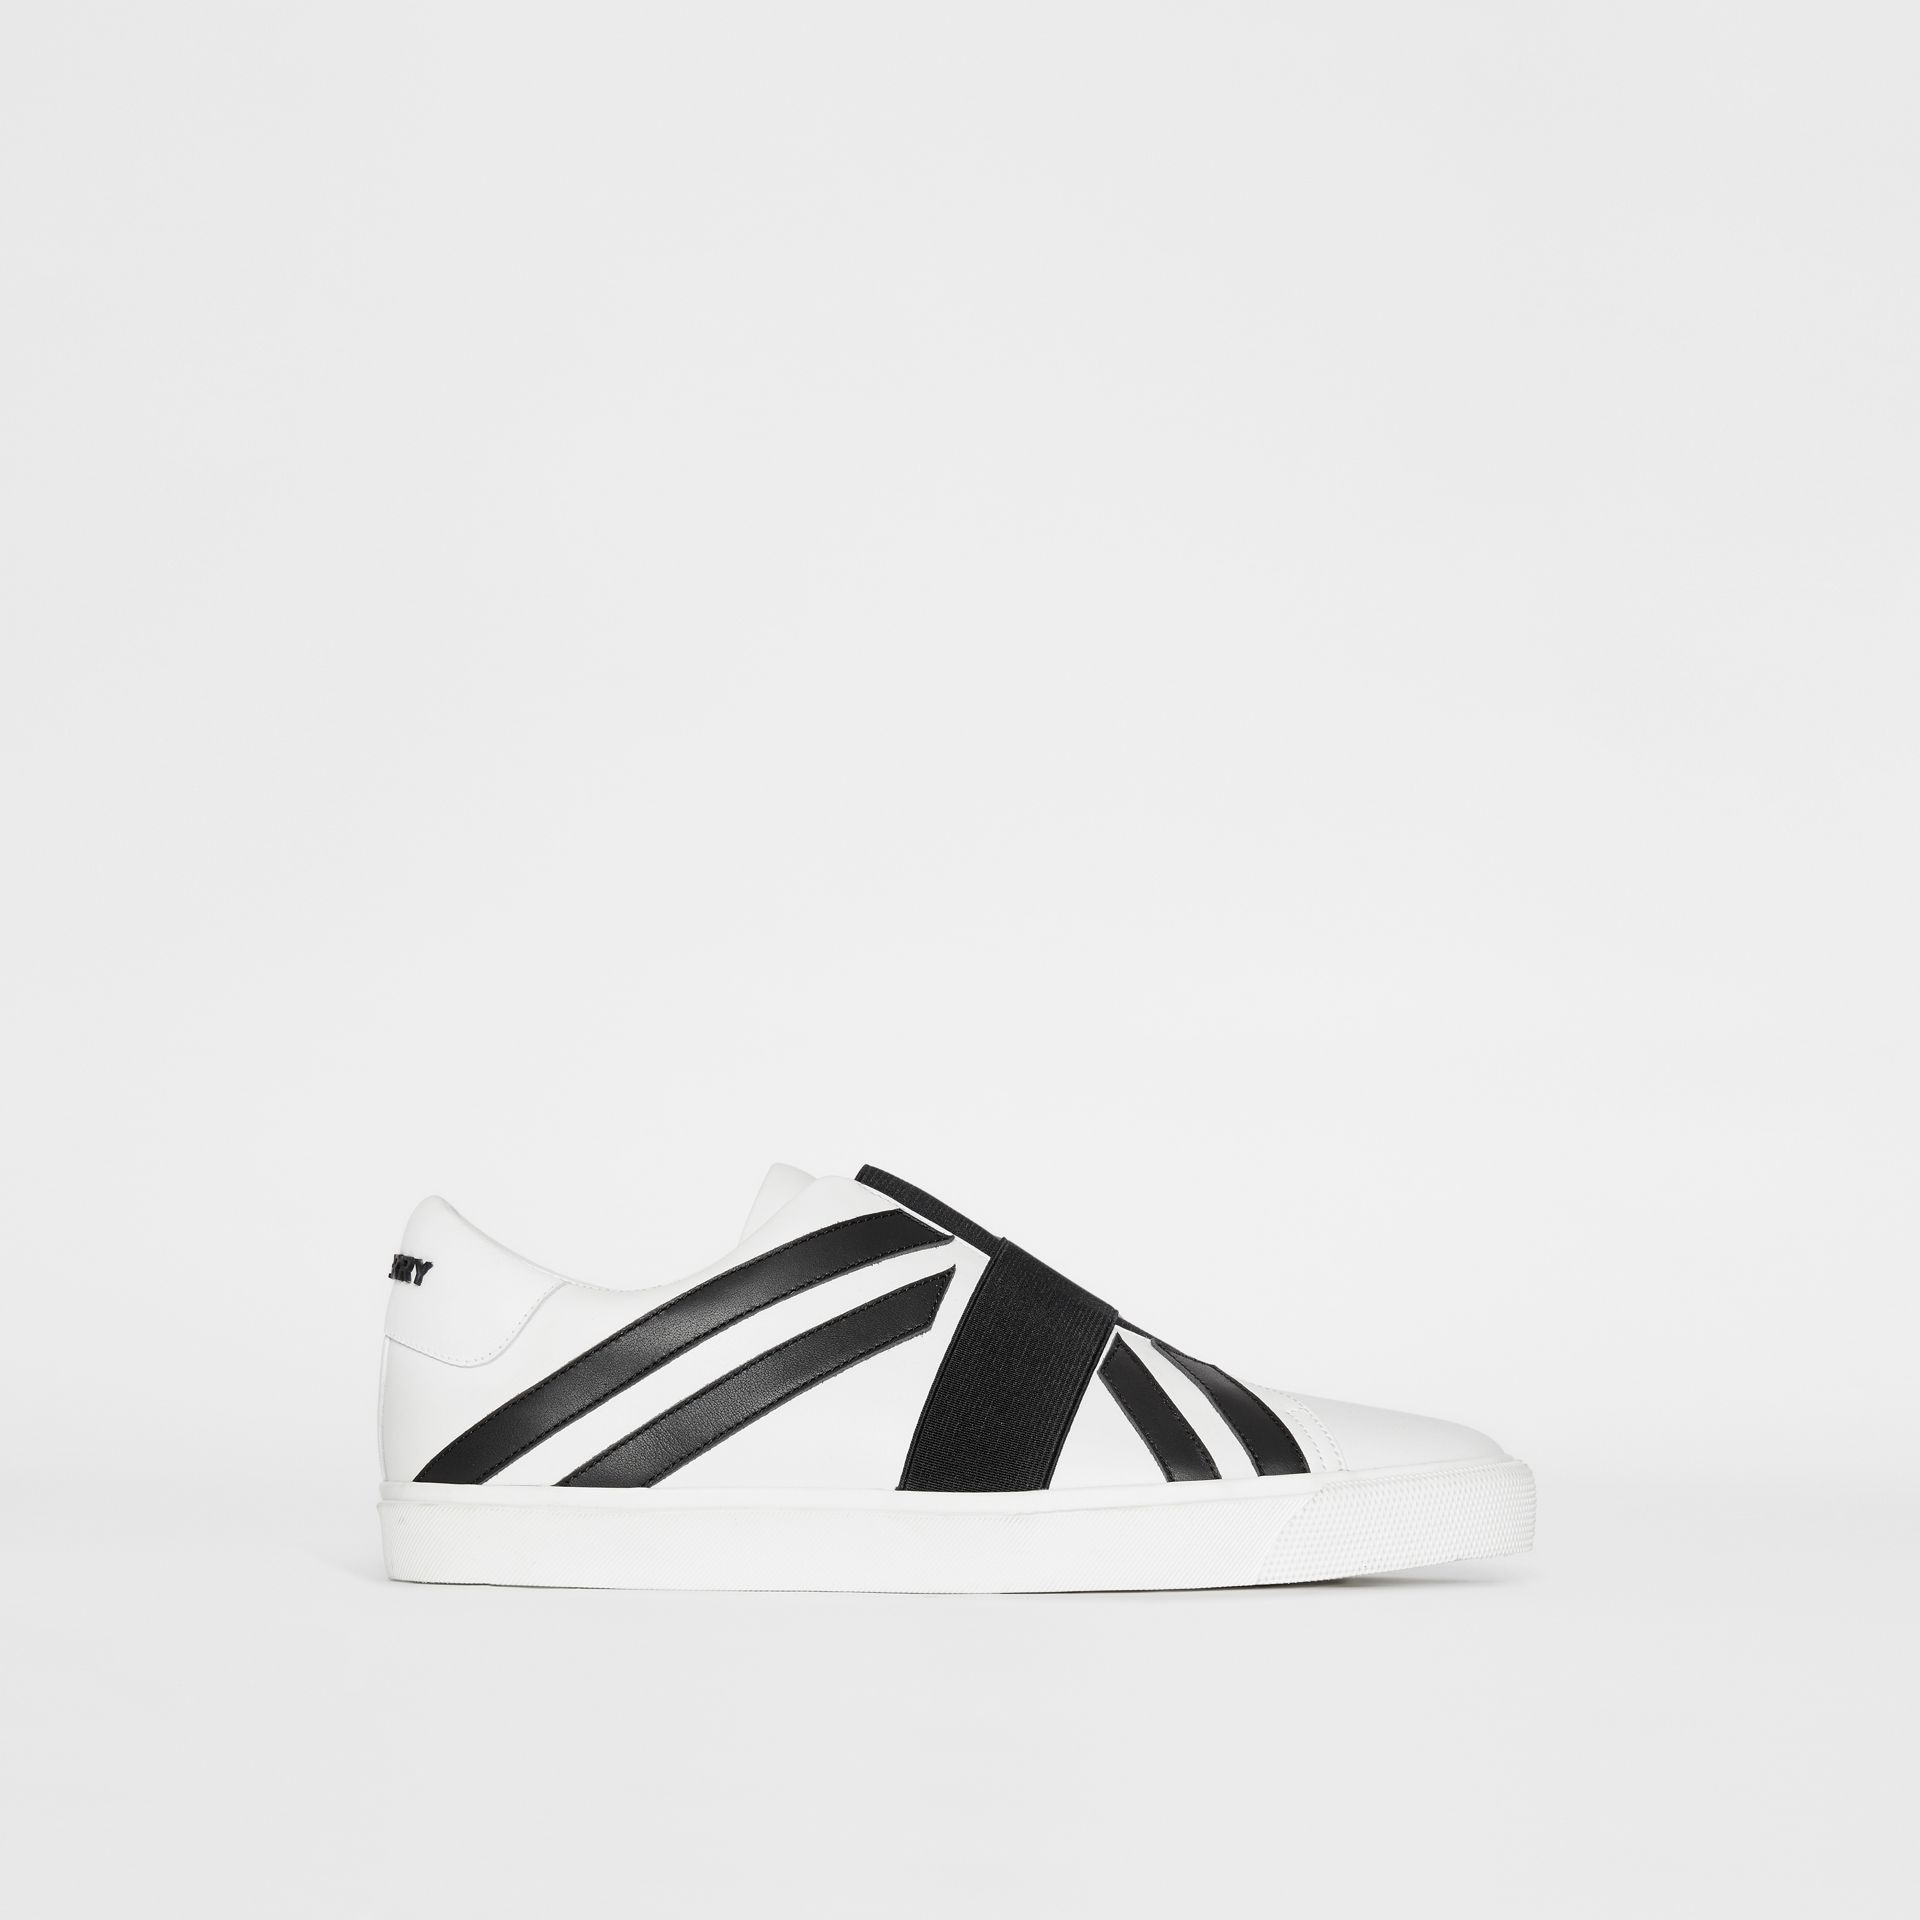 Union Jack Motif Slip-on Sneakers in White - Men | Burberry - gallery image 4